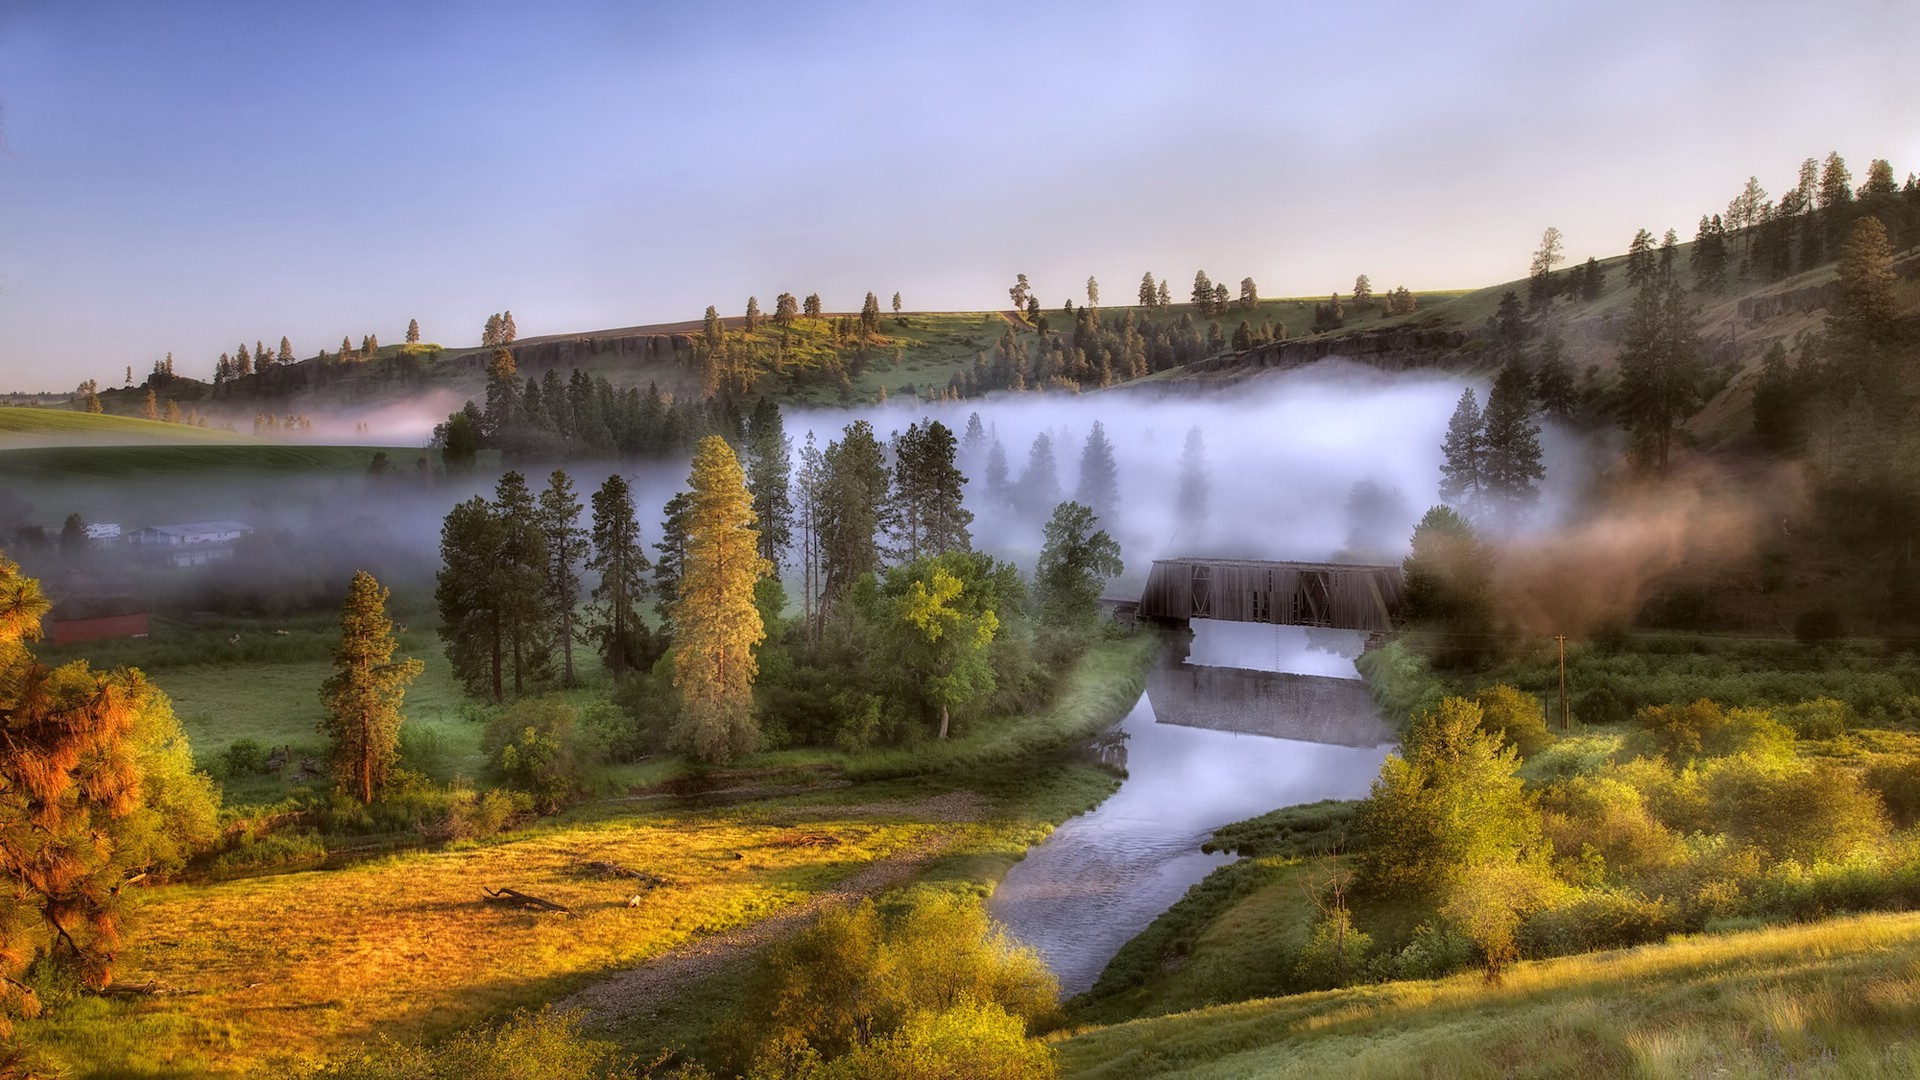 Anime Fall 2015 Wallpaper Nature Landscape Trees Forest Mist Morning River